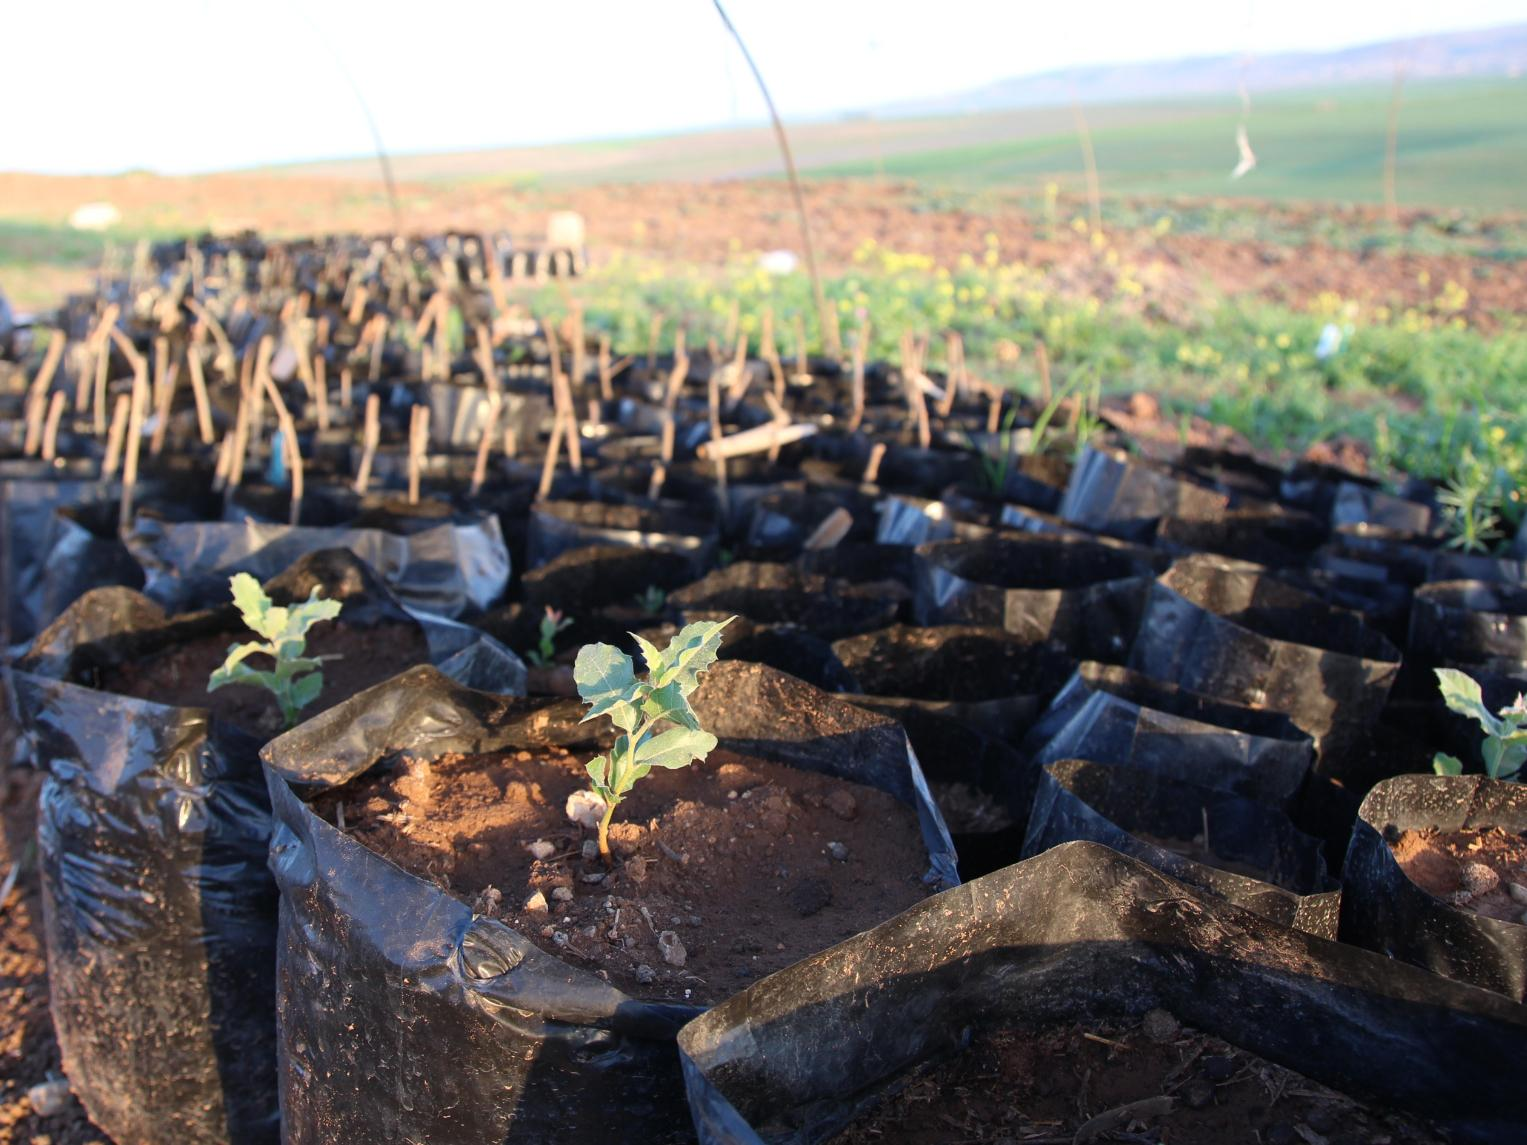 'Here's why we're planting trees in Northern Syria'